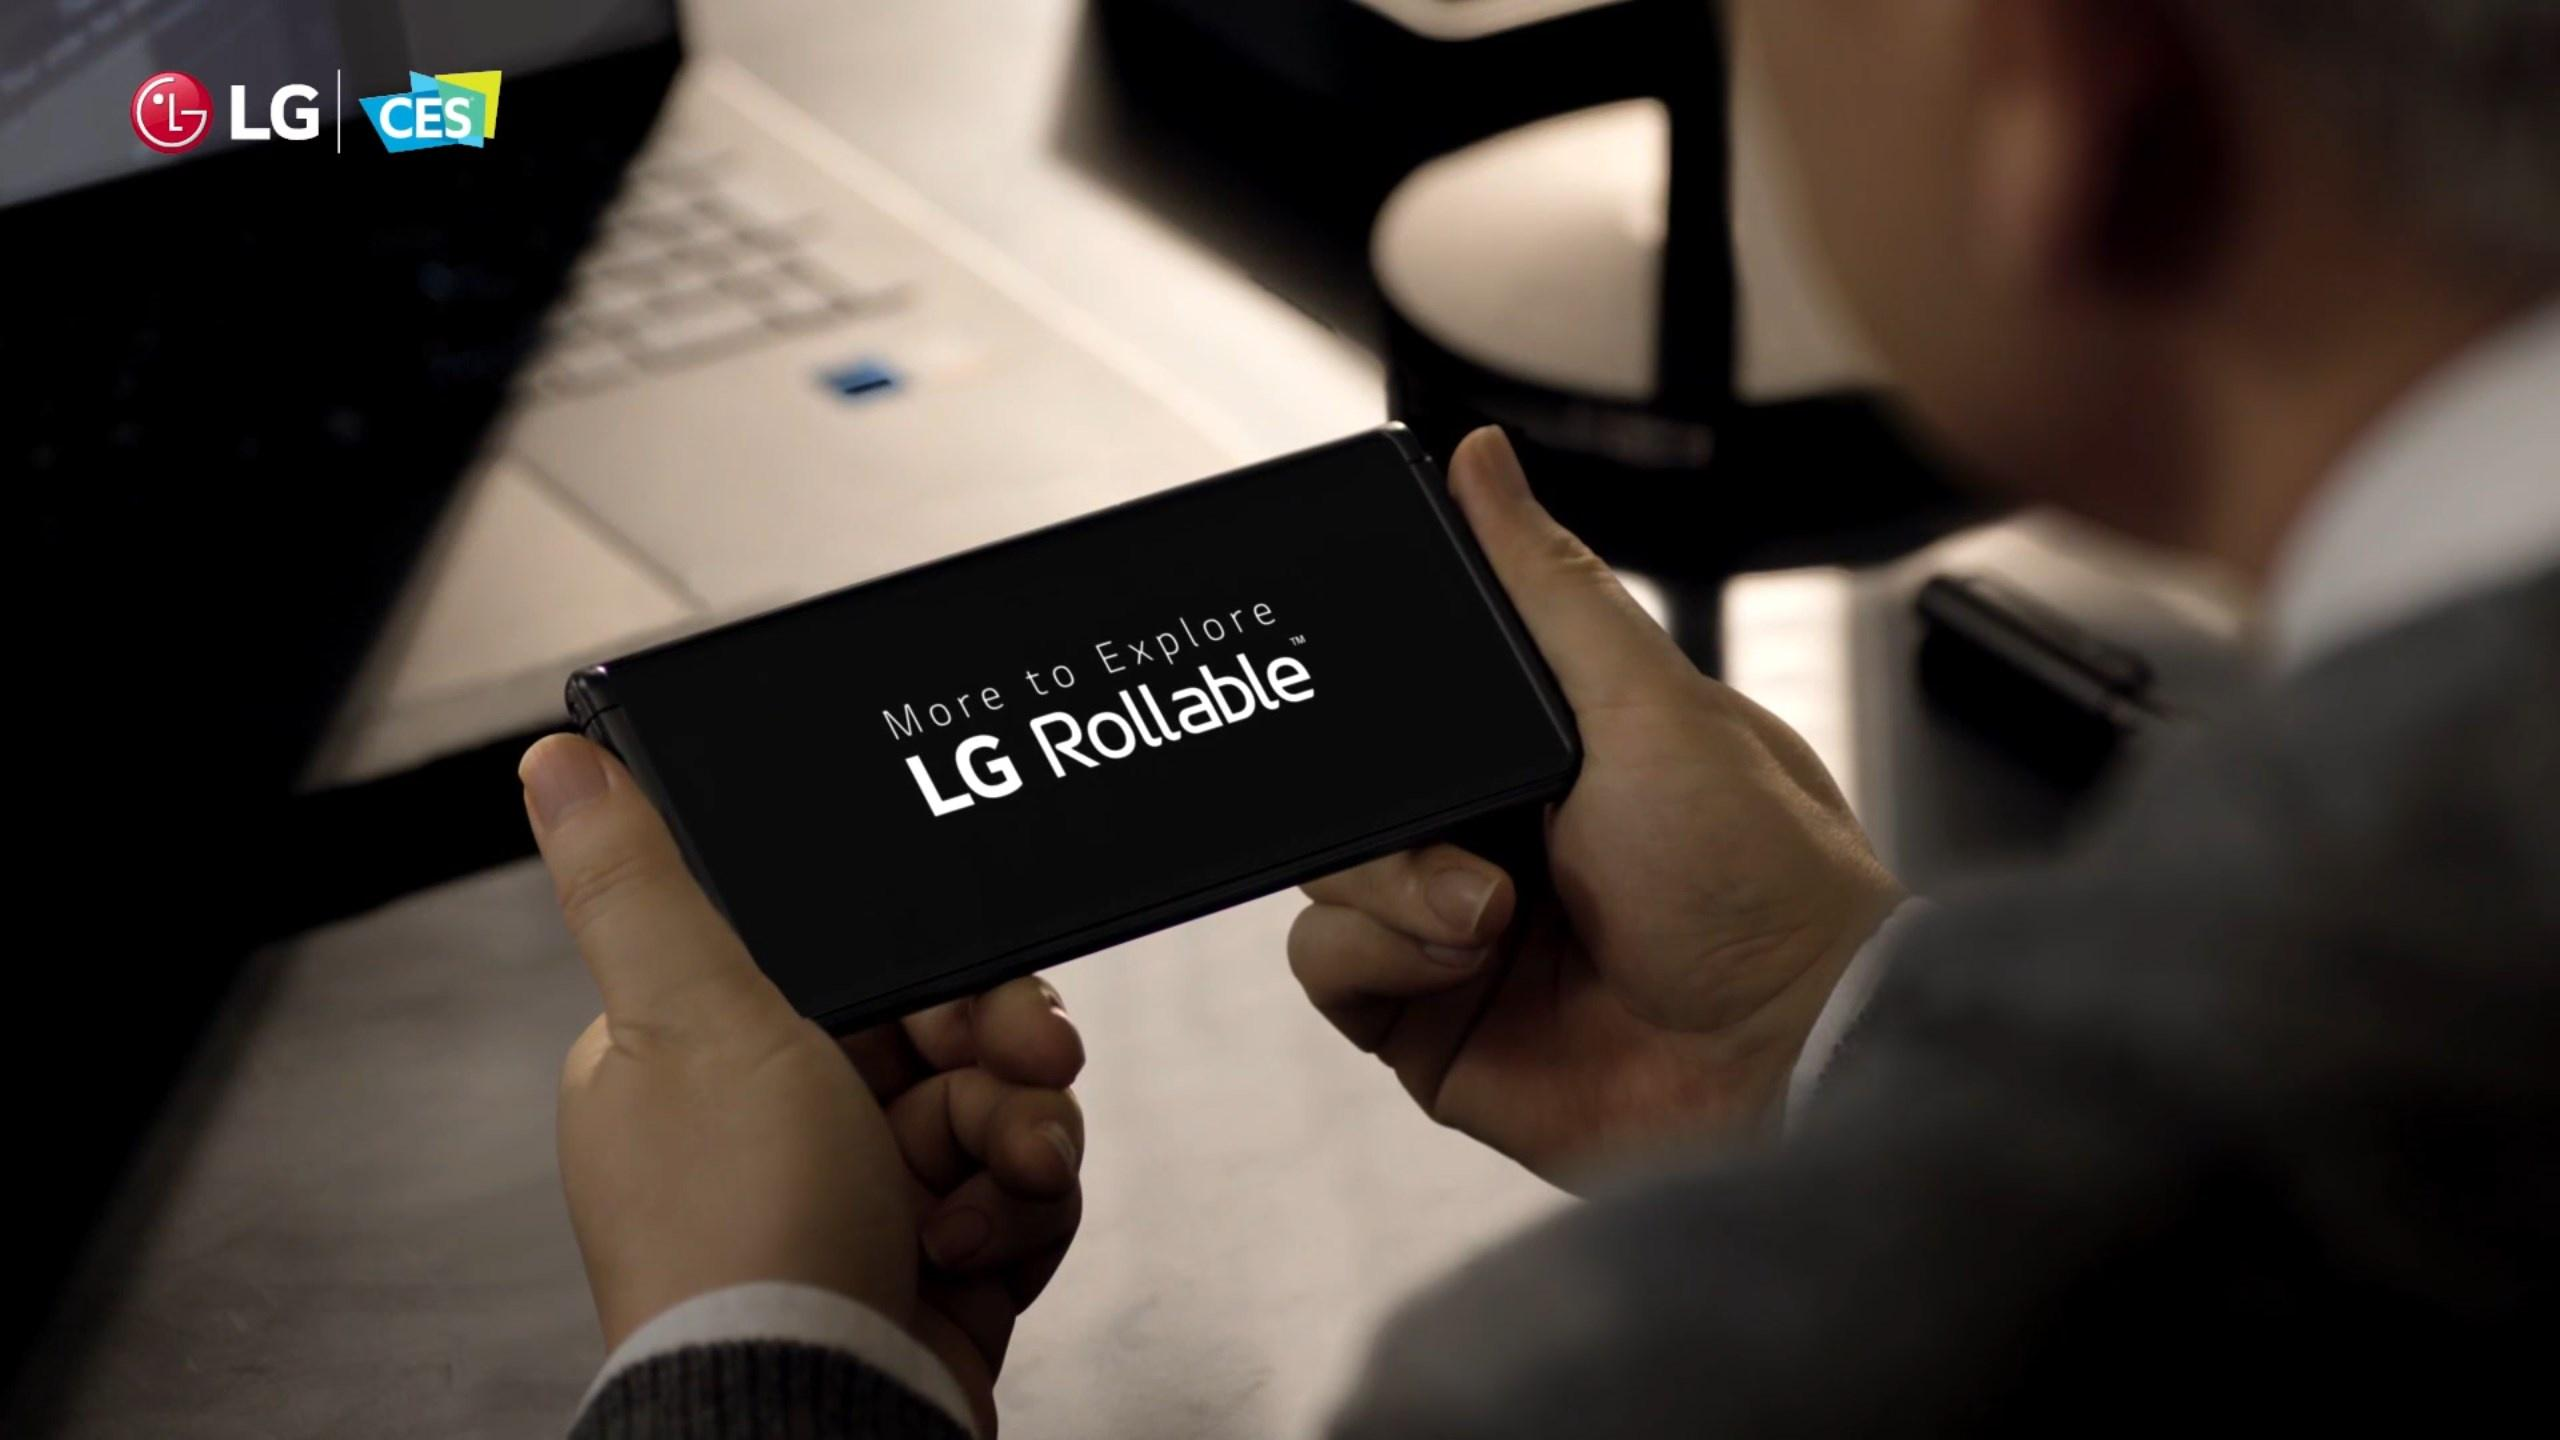 LG Rollable Main